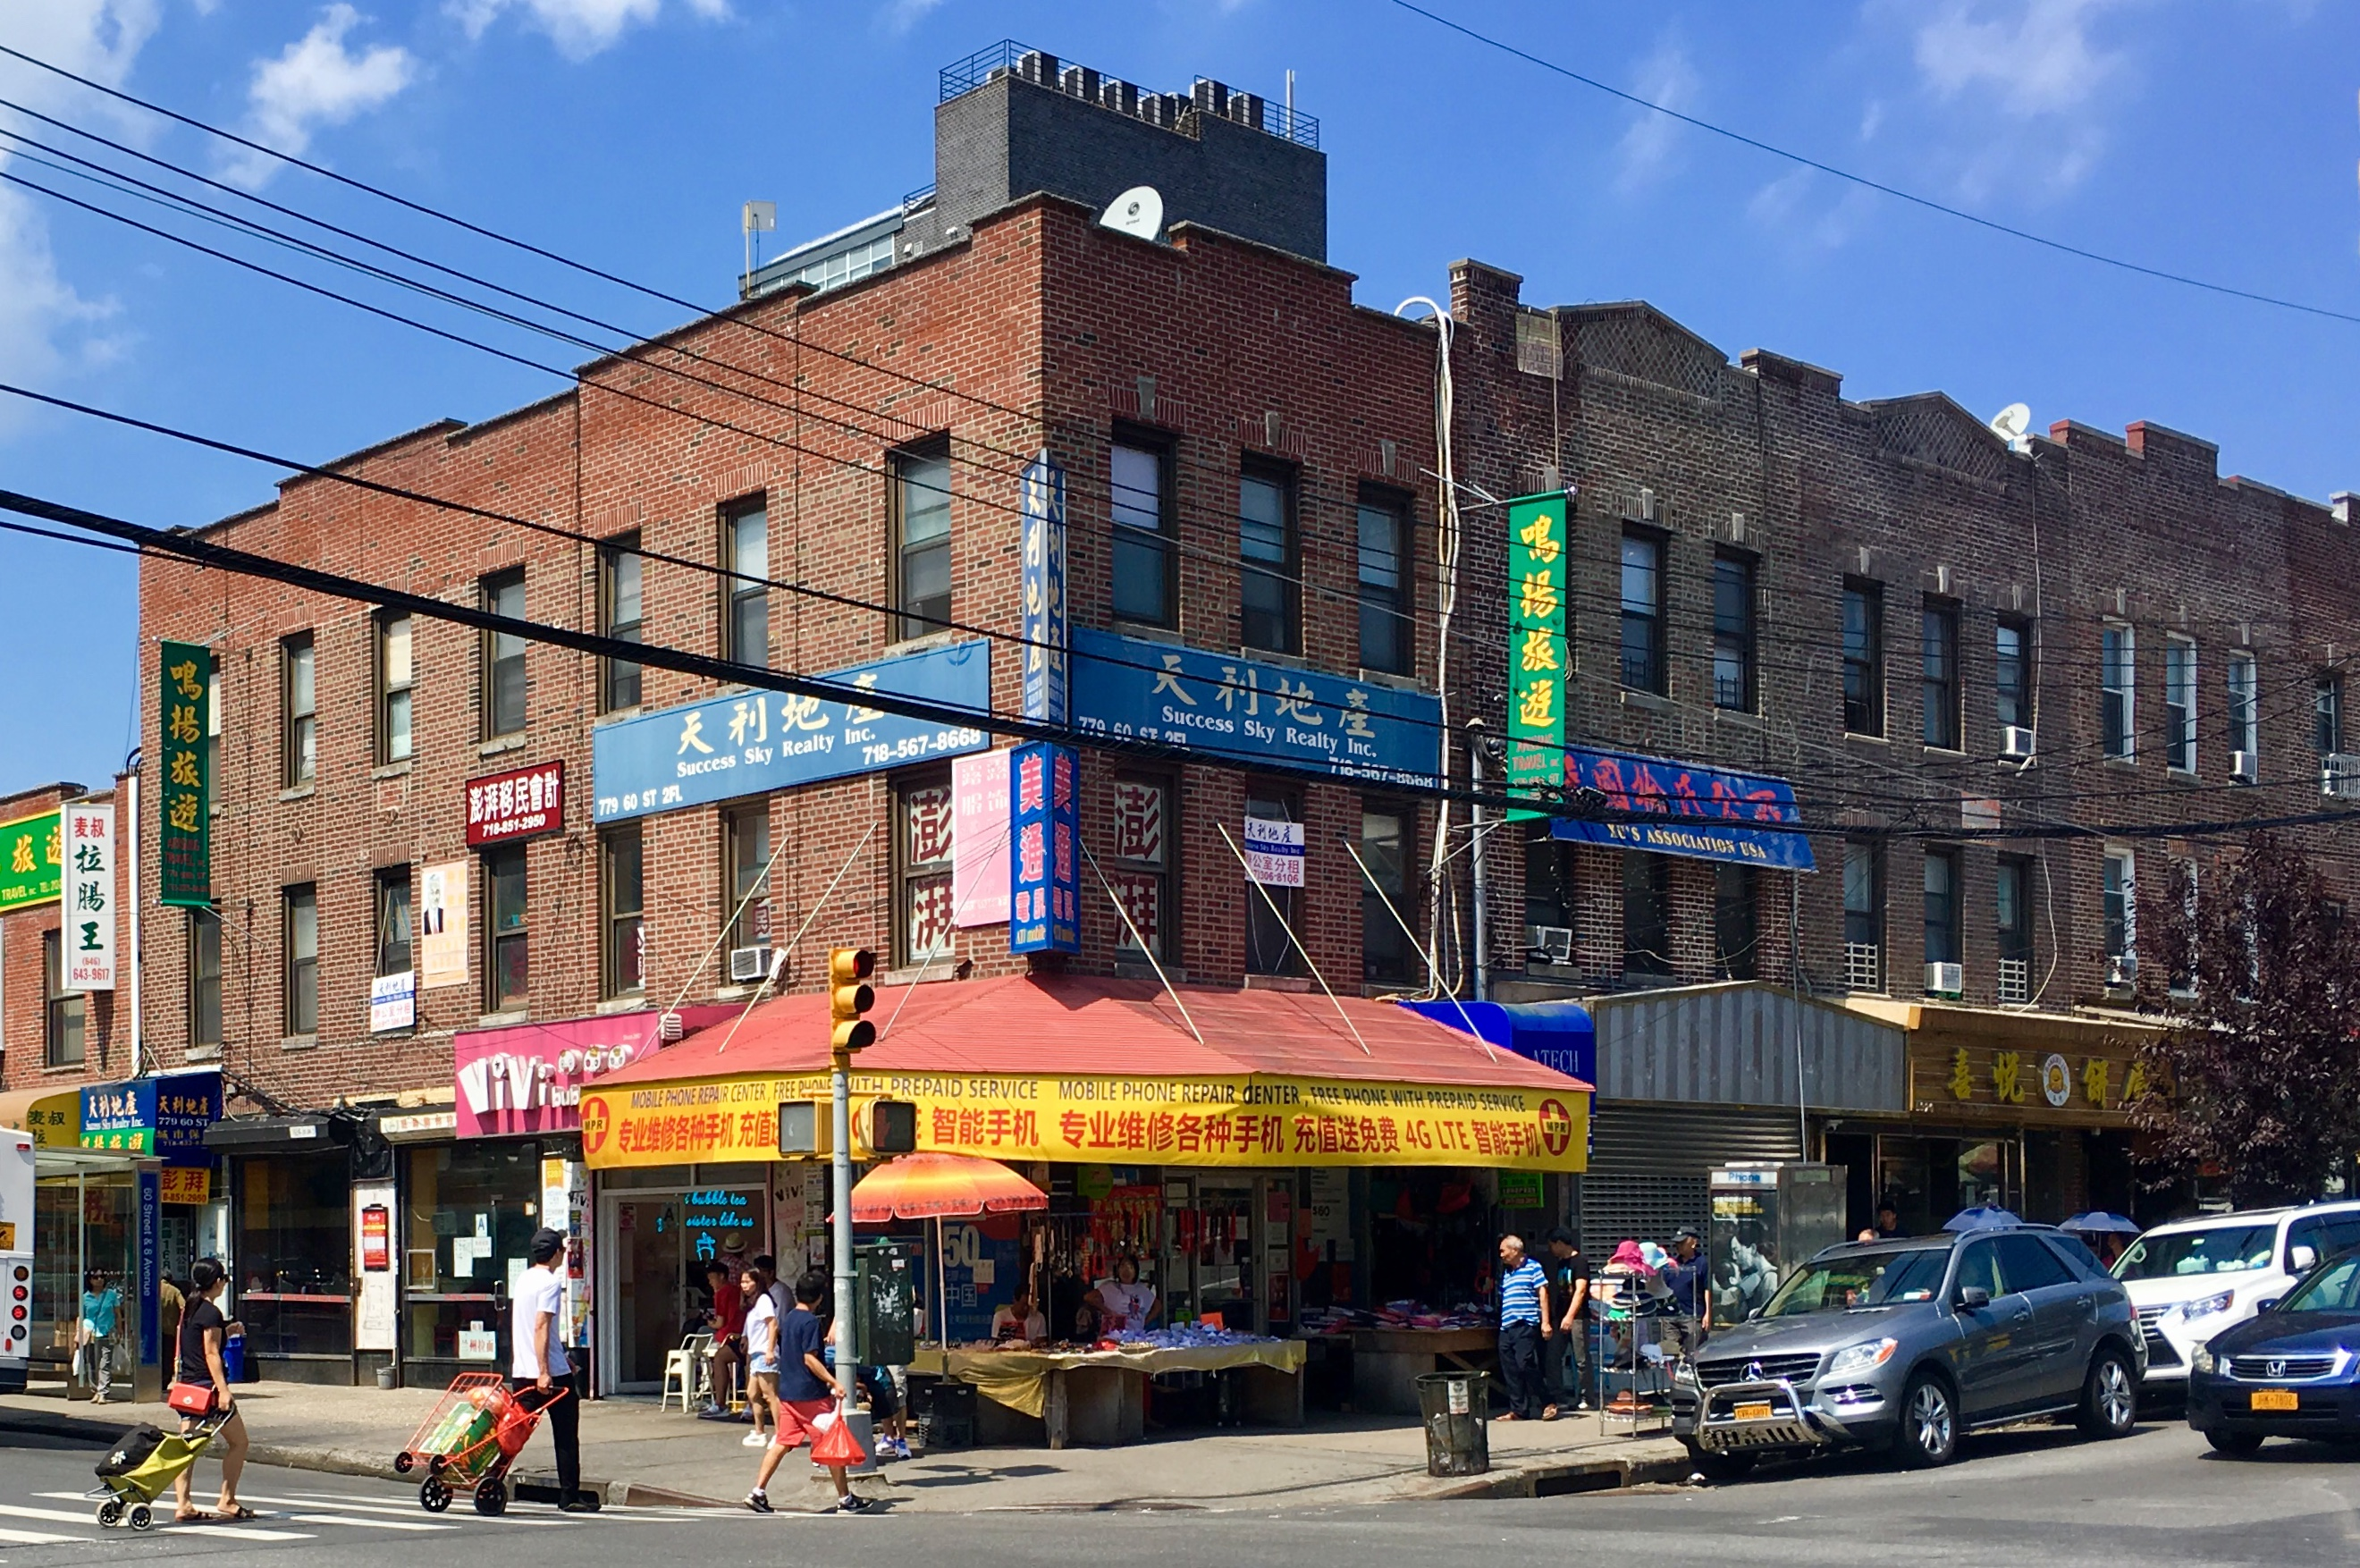 Eighth Avenue is bustling but there's a comforting small-town vibe. Eagle photo by Lore Croghan